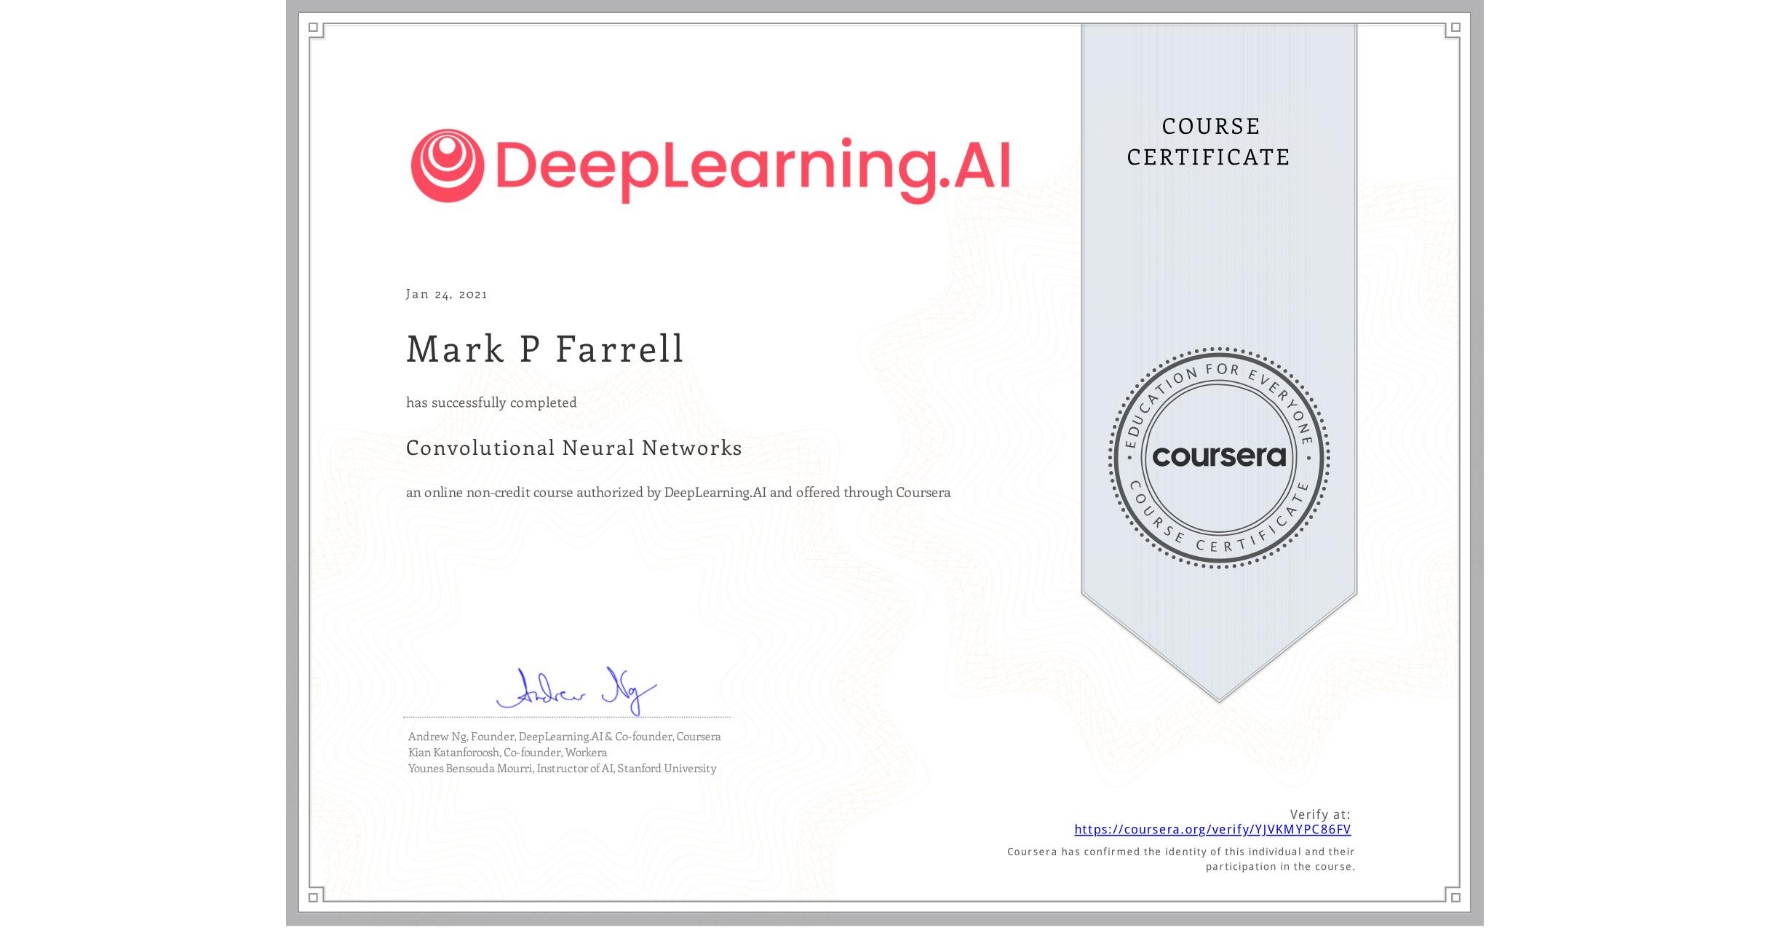 View certificate for Mark P Farrell, Convolutional Neural Networks, an online non-credit course authorized by DeepLearning.AI and offered through Coursera